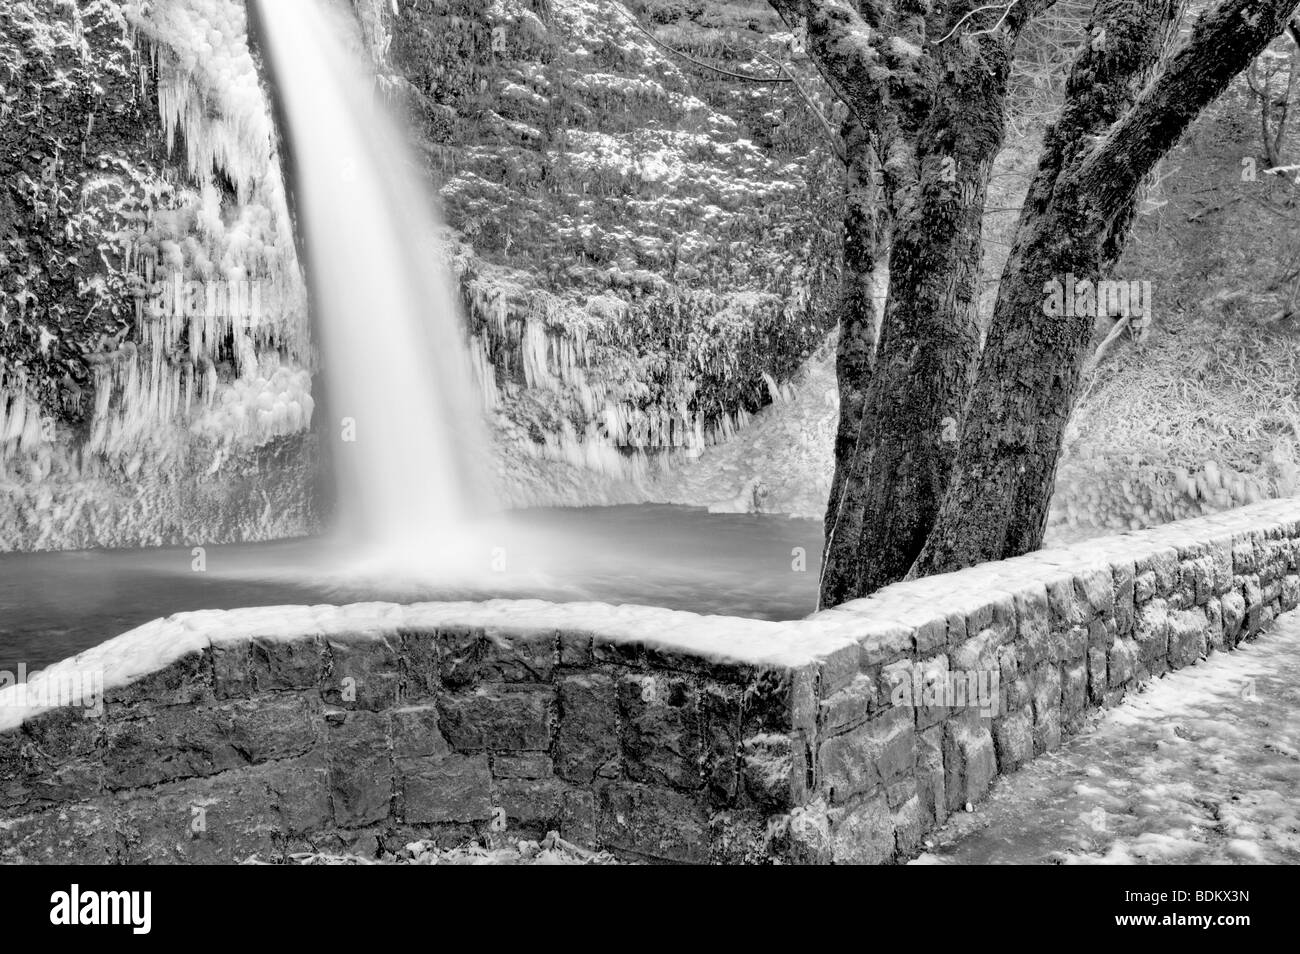 Lower Horsetail Falls with ice and rock wall Columbia River Gorge National Scenic Area Oregon - Stock Image